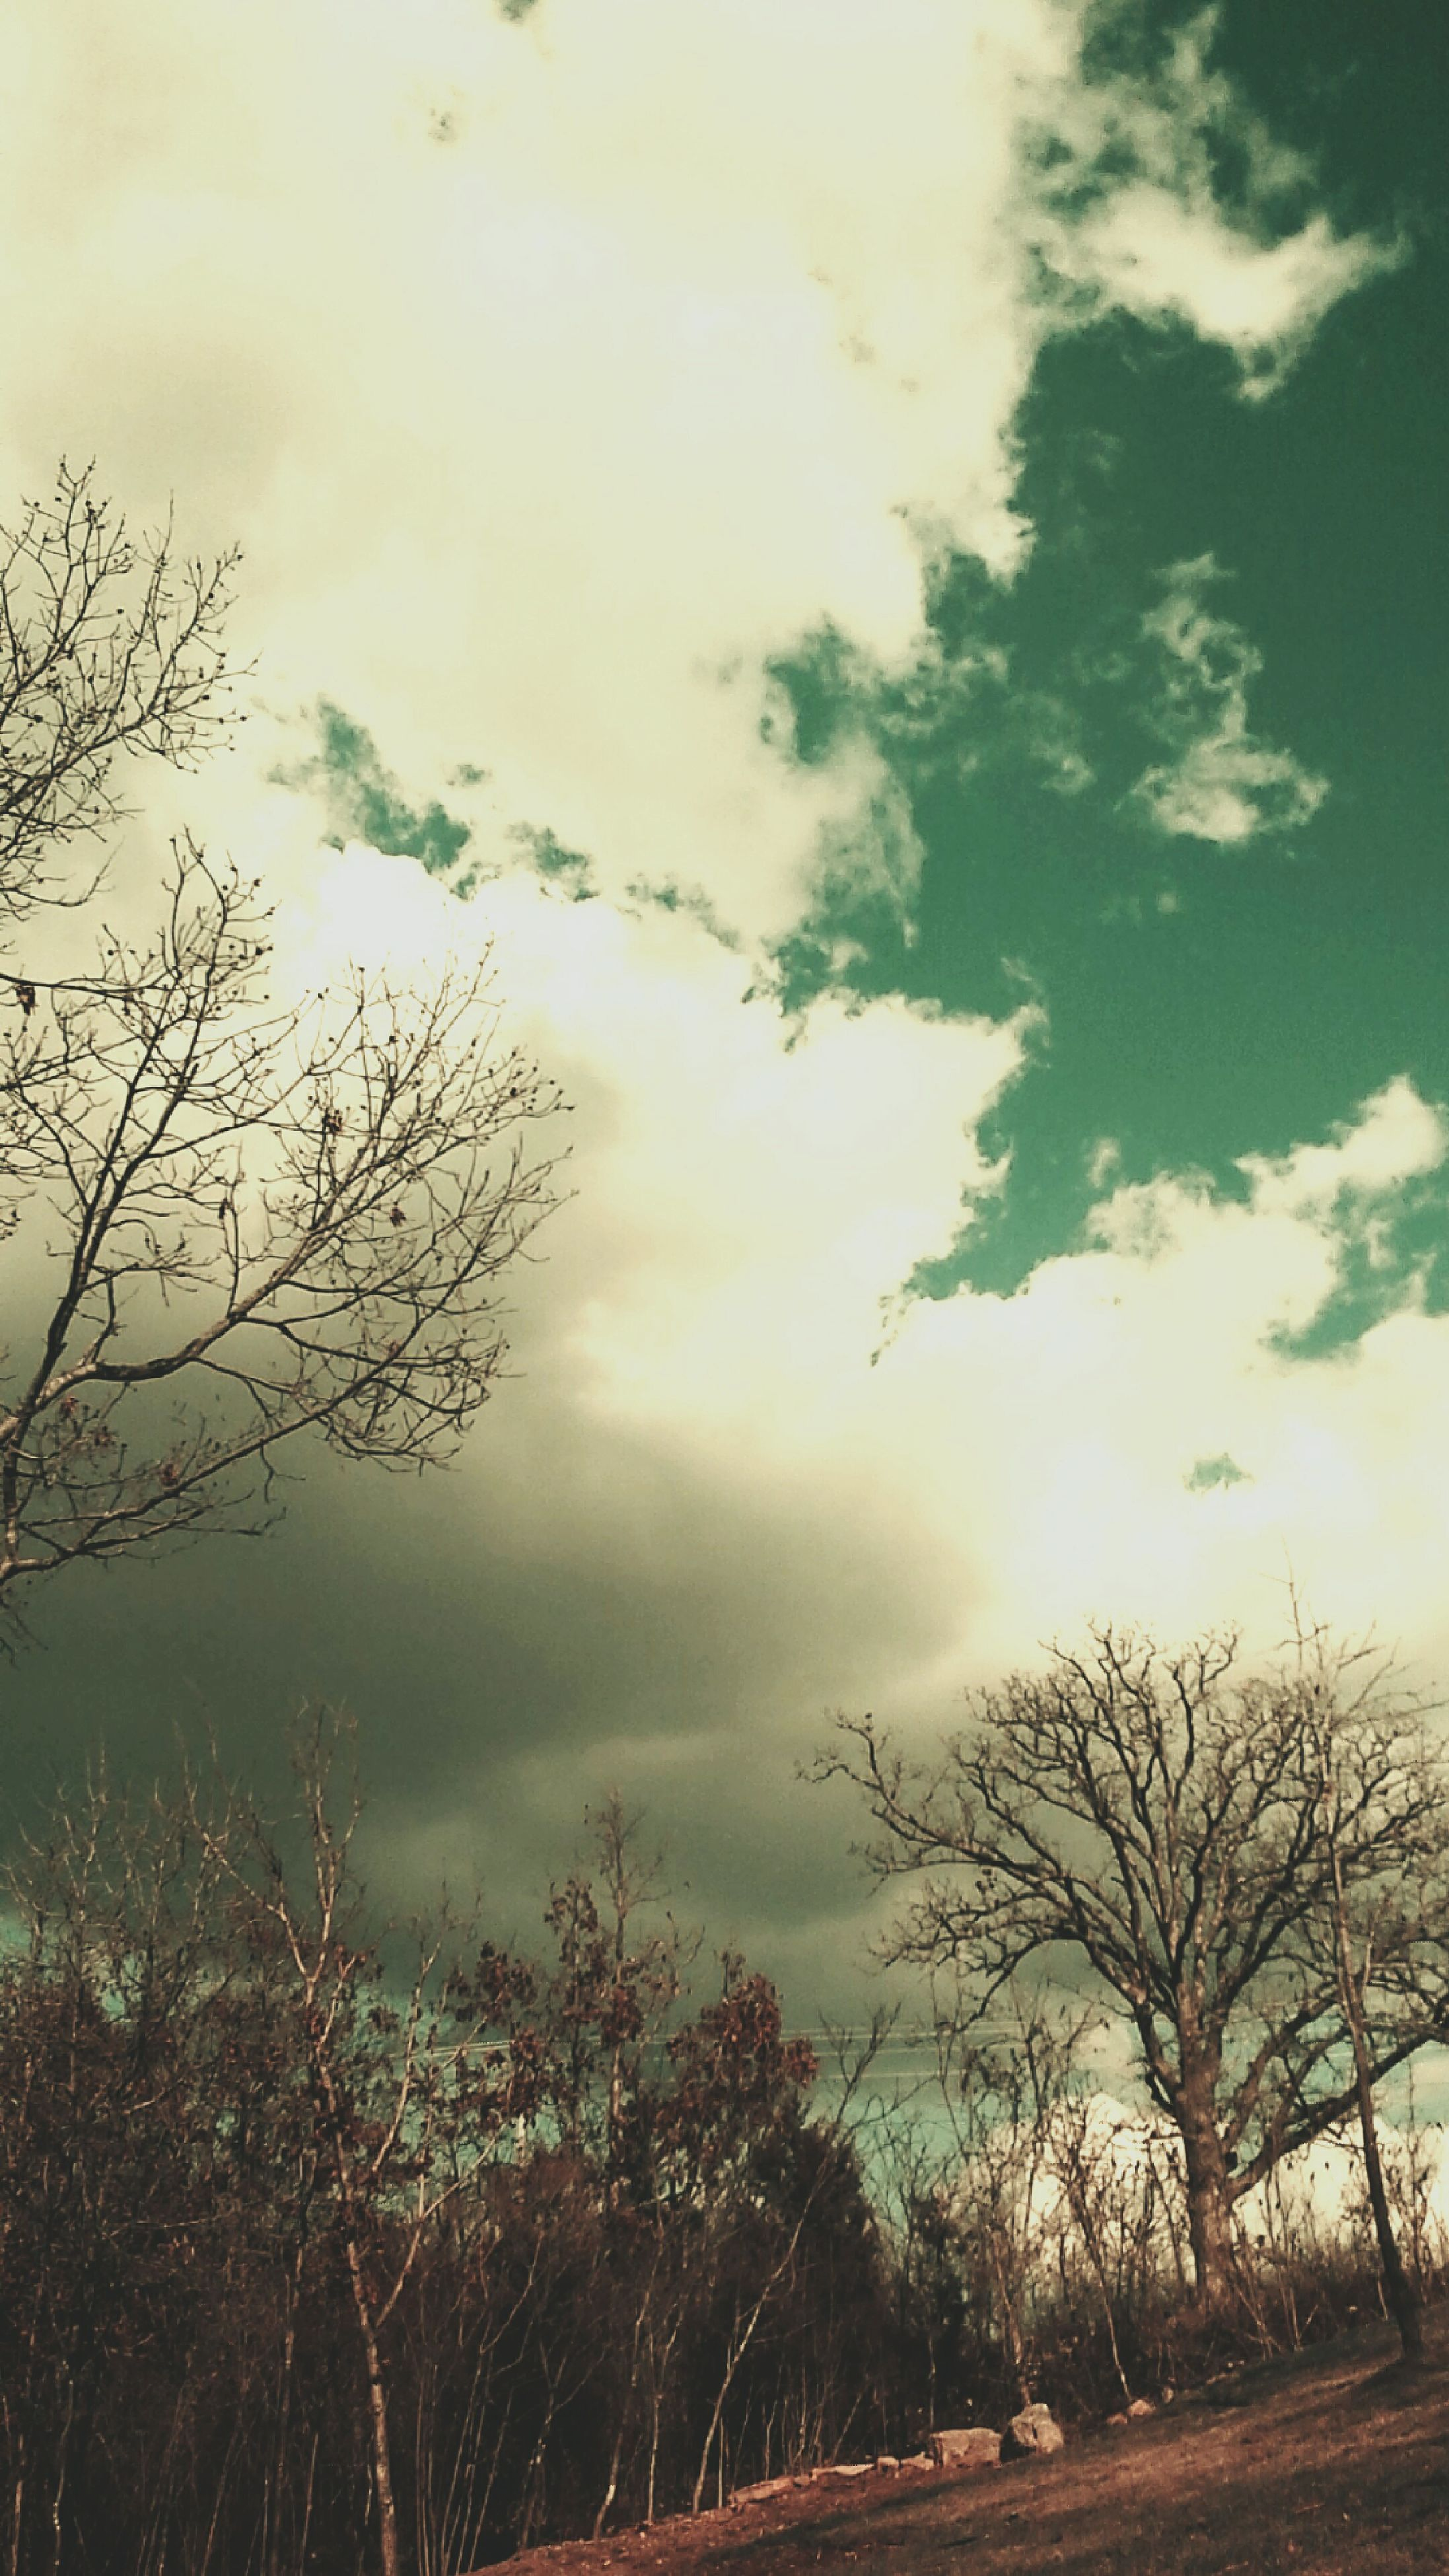 sky, tree, bare tree, cloud - sky, tranquility, tranquil scene, cloudy, scenics, nature, beauty in nature, branch, cloud, landscape, overcast, silhouette, idyllic, outdoors, growth, weather, non-urban scene